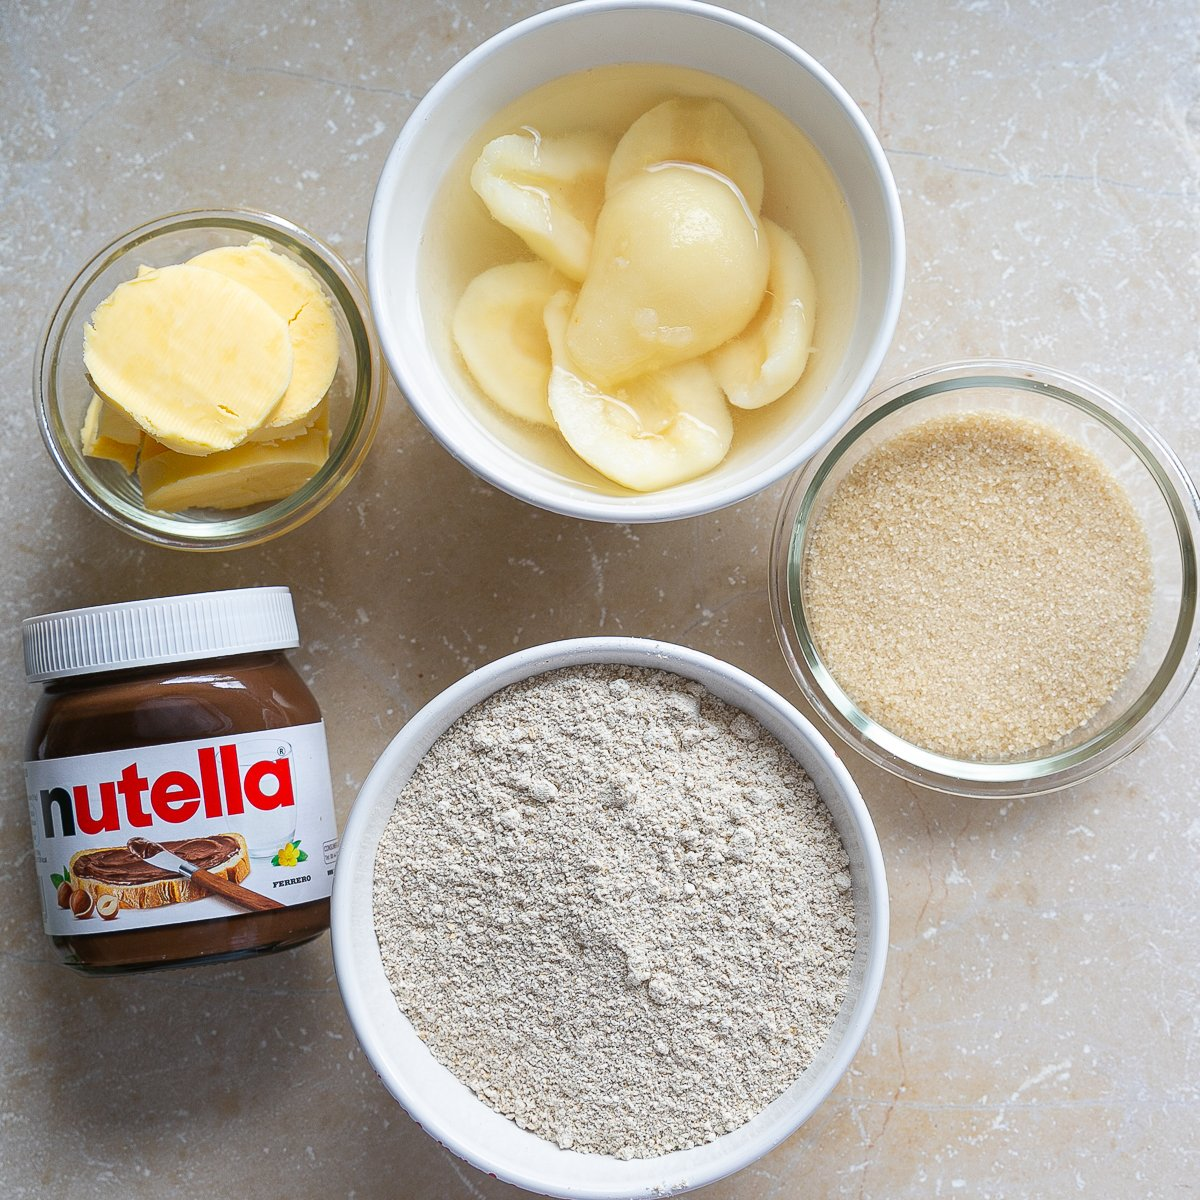 all the ingredients needed to make oaty pear and chocolate crumble